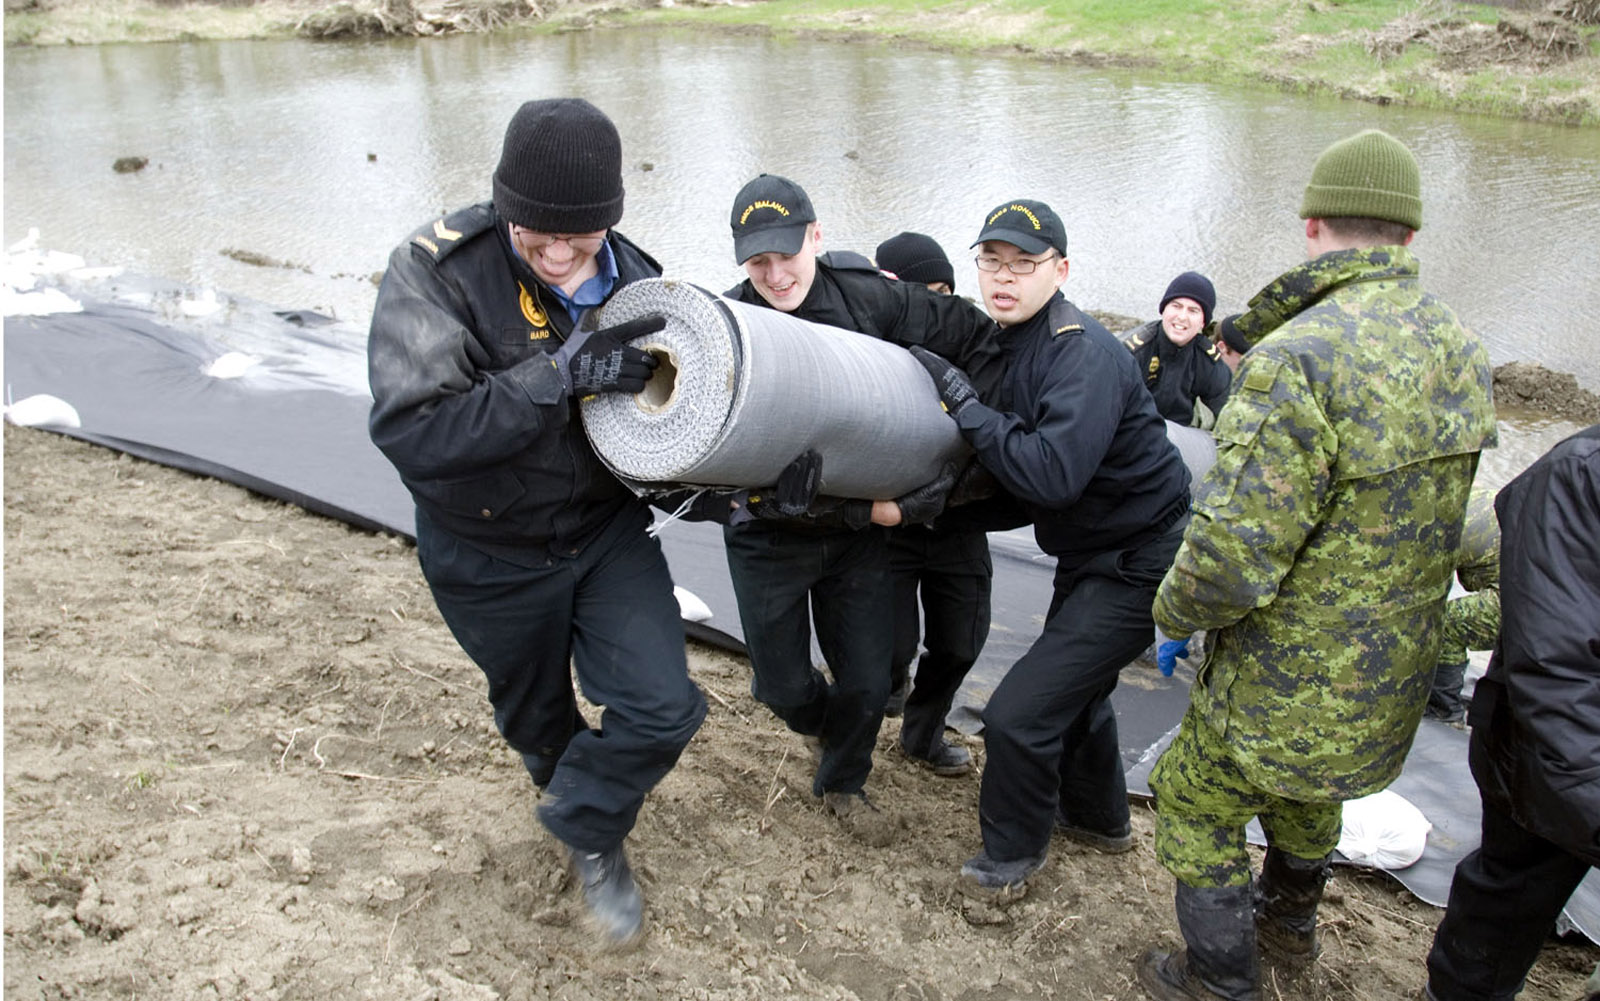 Sailors from Naval Reserve Divisions have assisted fellow Canadians after devastating floods.